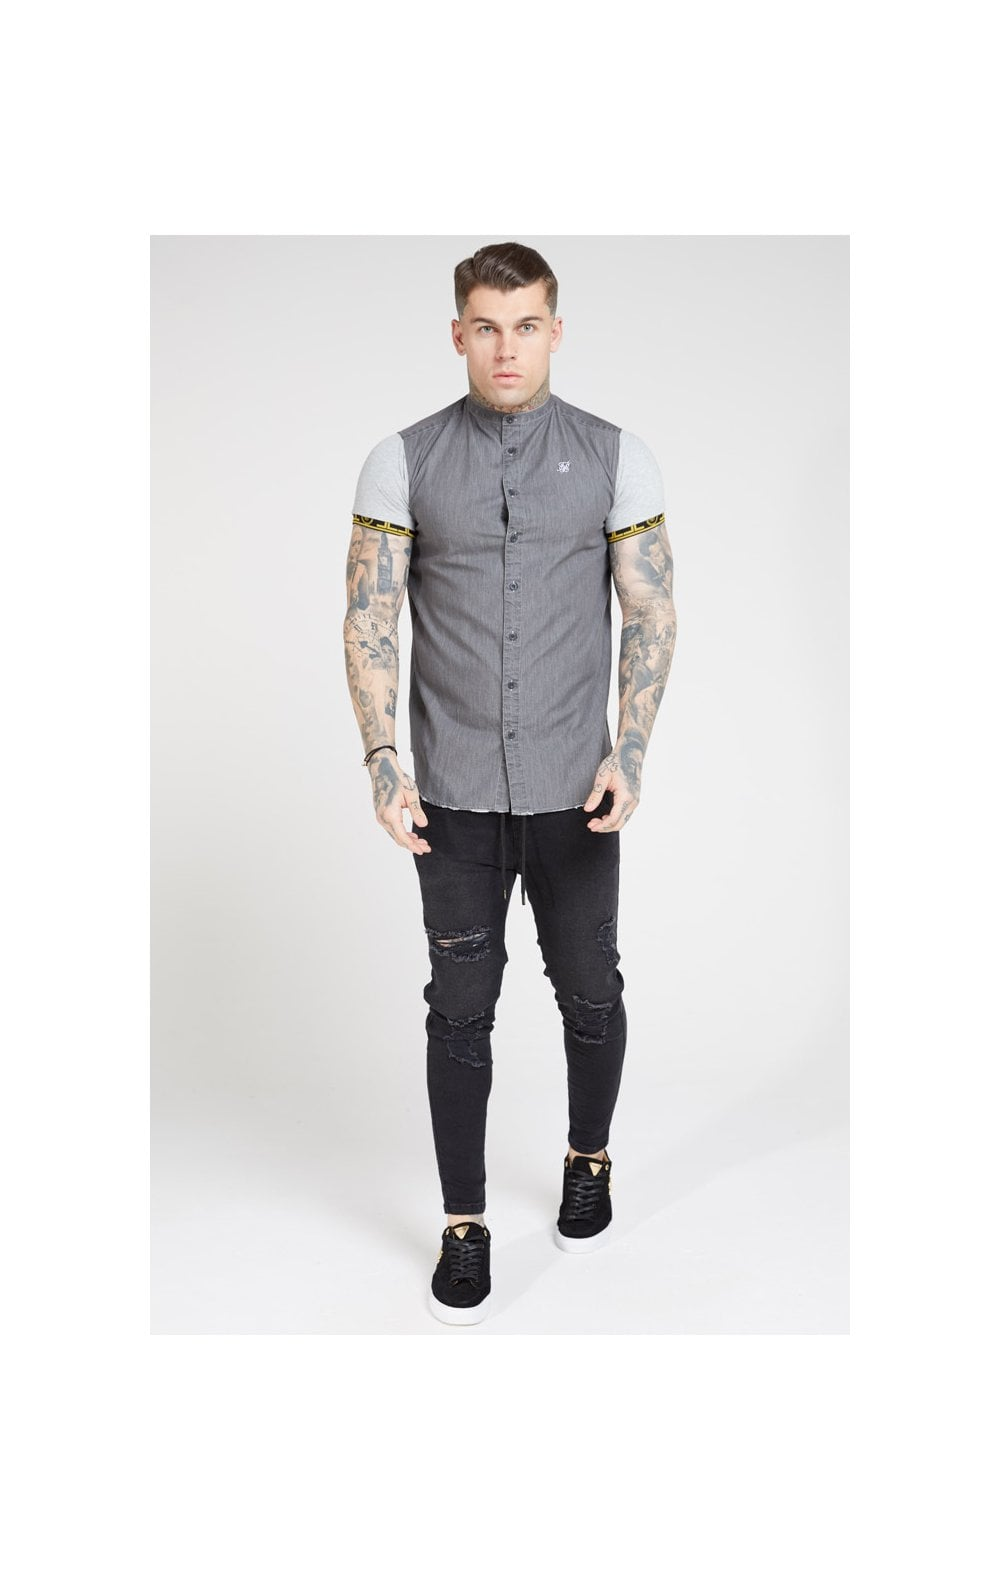 SikSilk S/S Denim Shirt – Grey (2)